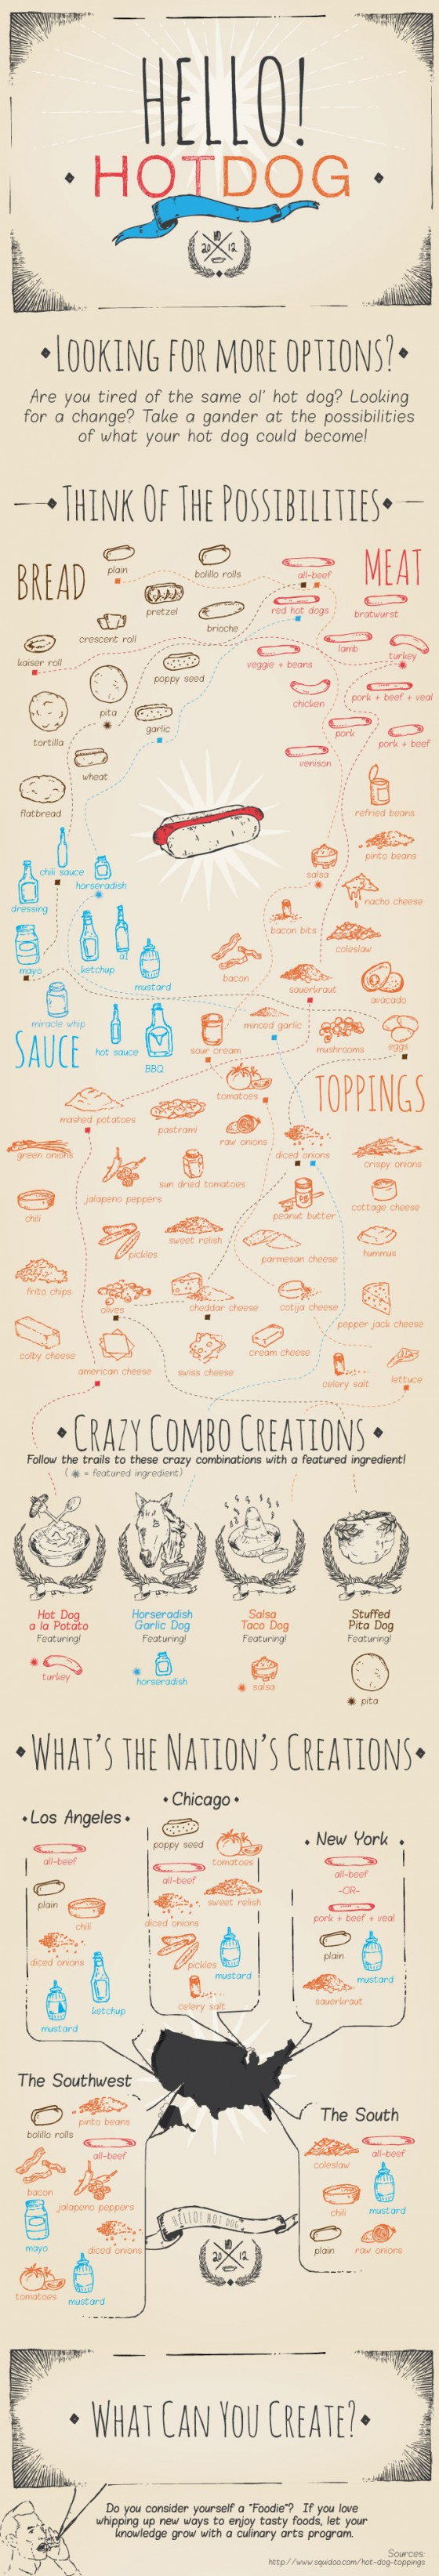 Hot Dog Toppings Infographic 560x3287